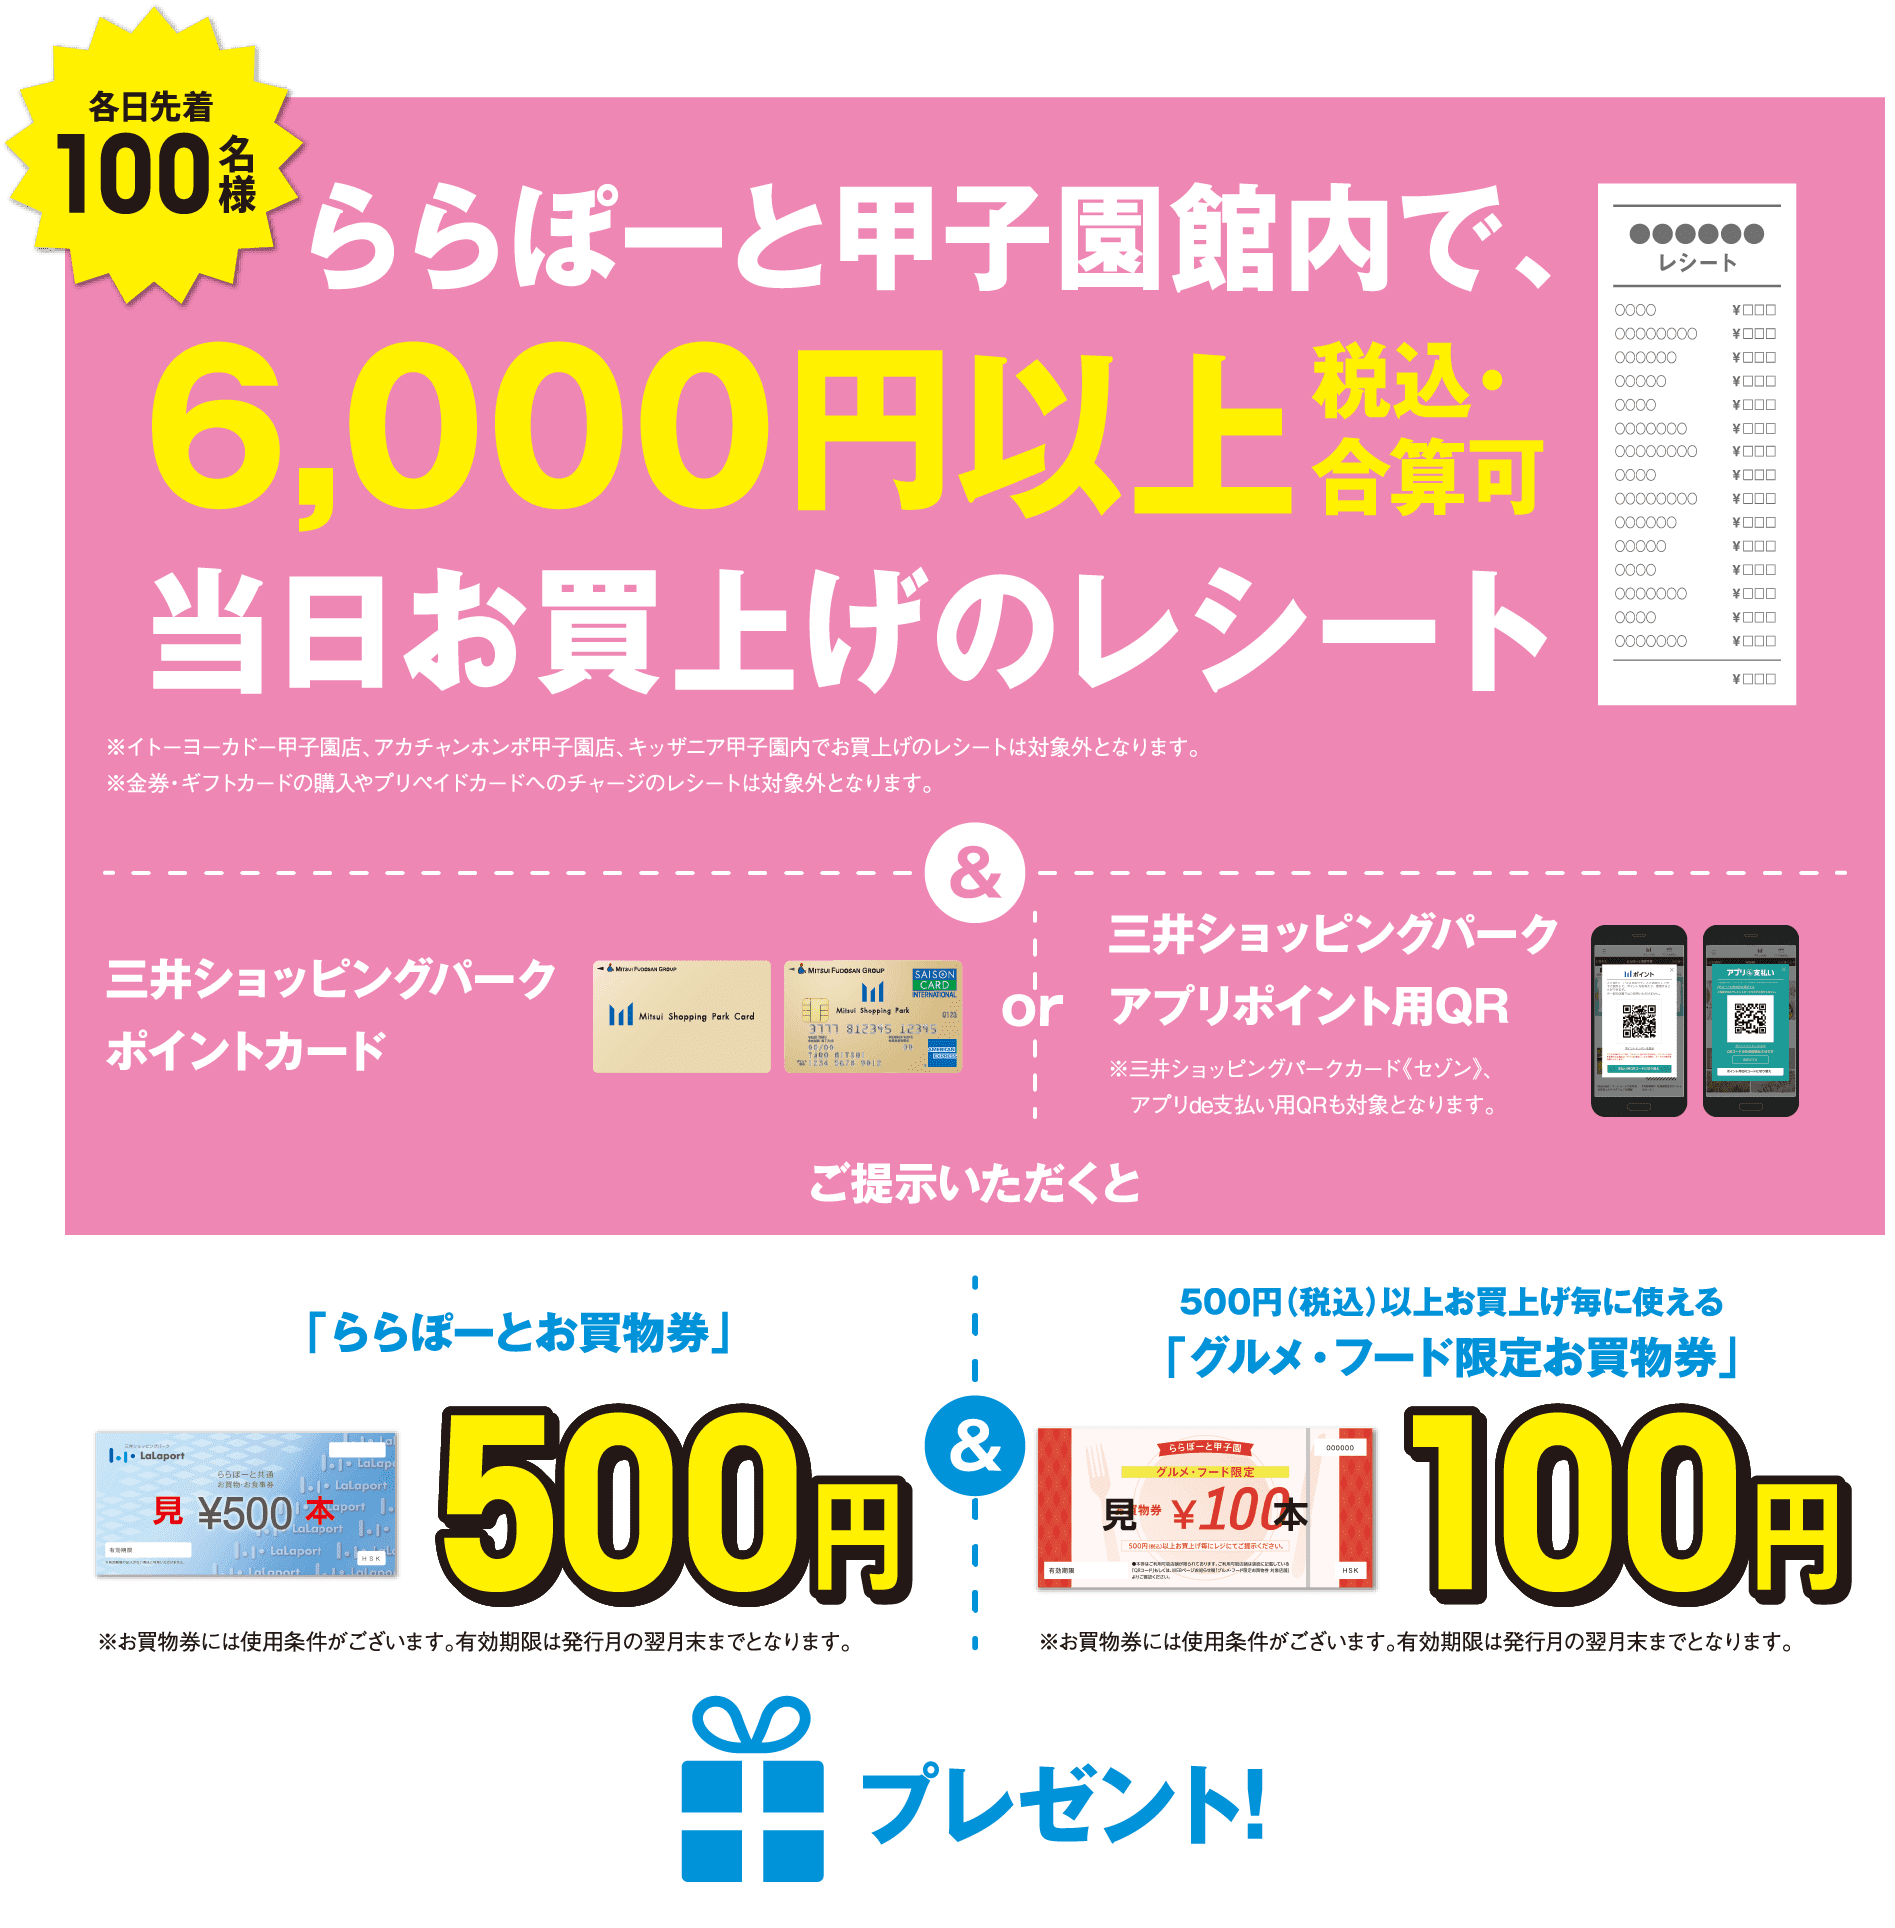 """Receipt of the adding up possible day purchase tax-included in 100 people LaLaport Koshien building the first in every day 6,000 yen or more ※Receipt of purchase is excluded in Ito Yokado Koshien store, akachan honpo Koshien store, KidZania Koshien. ※Receipt of purchase is excluded in Ito Yokado Koshien store, akachan honpo Koshien store, KidZania Koshien. QR for Mitsui Shopping Park reward card or Mitsui Shopping Park application point ※It is for Mitsui Shopping Park card << Saison >>, QR for application de payment, too. When have show; """"LaLaport shopping ticket"""" 500 yen ※Terms of use are to shopping ticket. It is expiration date until the end of the month of issuance month. """"Gourmet foods-limited shopping ticket"""" which is usable every purchase 500 yen (tax-included) or more 100 yen ※Terms of use are to shopping ticket. It is expiration date until the end of the month of issuance month. Present!"""